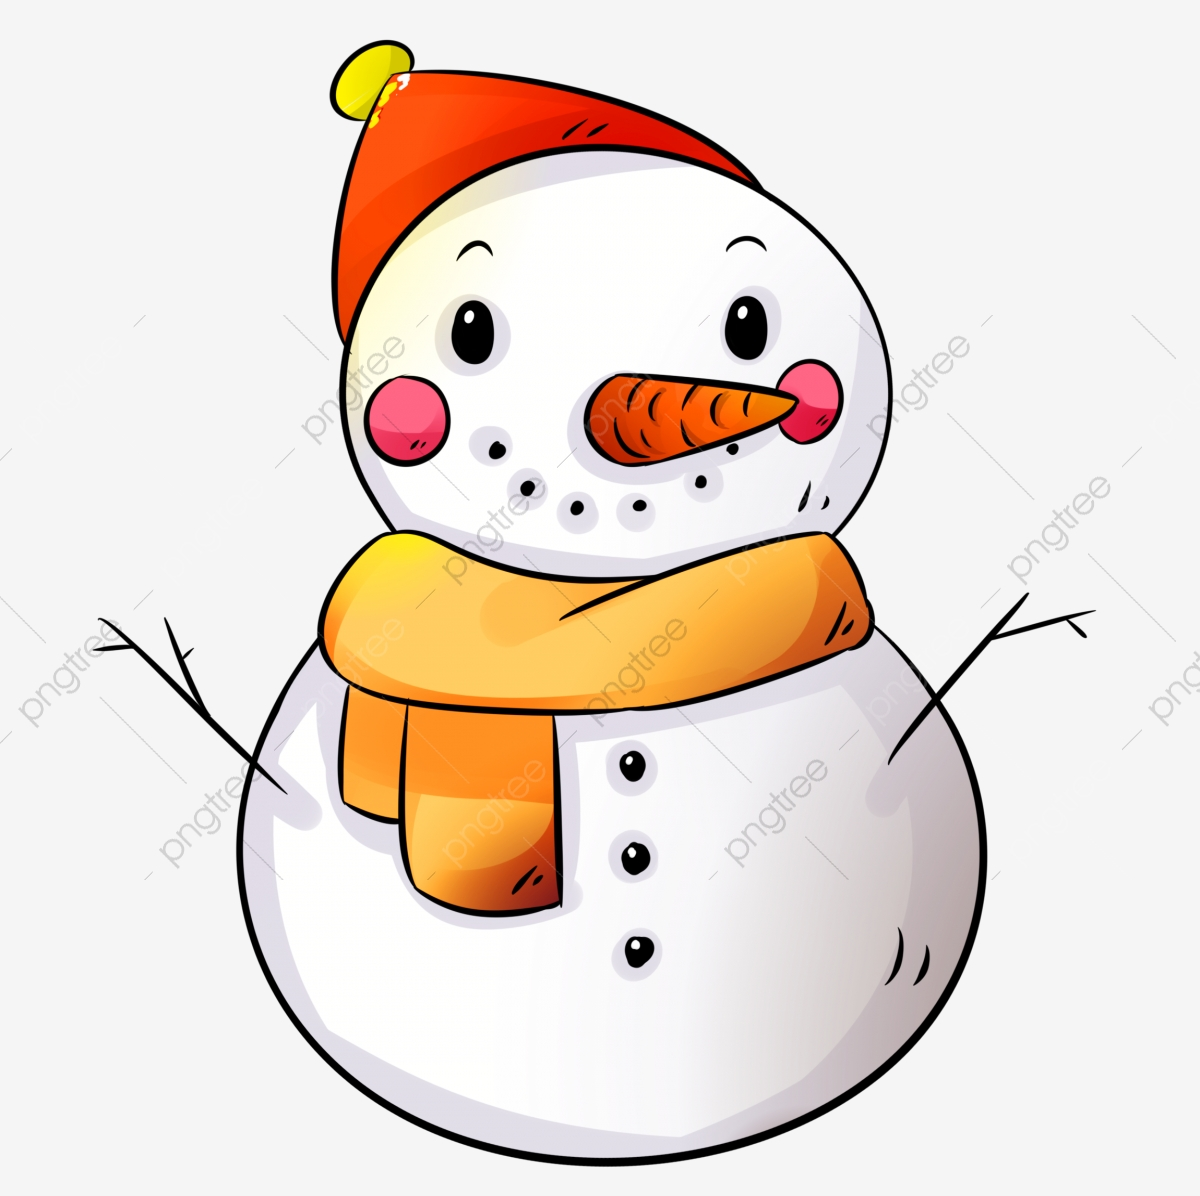 cute snowman png images vector and psd files free download on pngtree https pngtree com freepng little snowman cute snowman carrot nose scarf 3828076 html